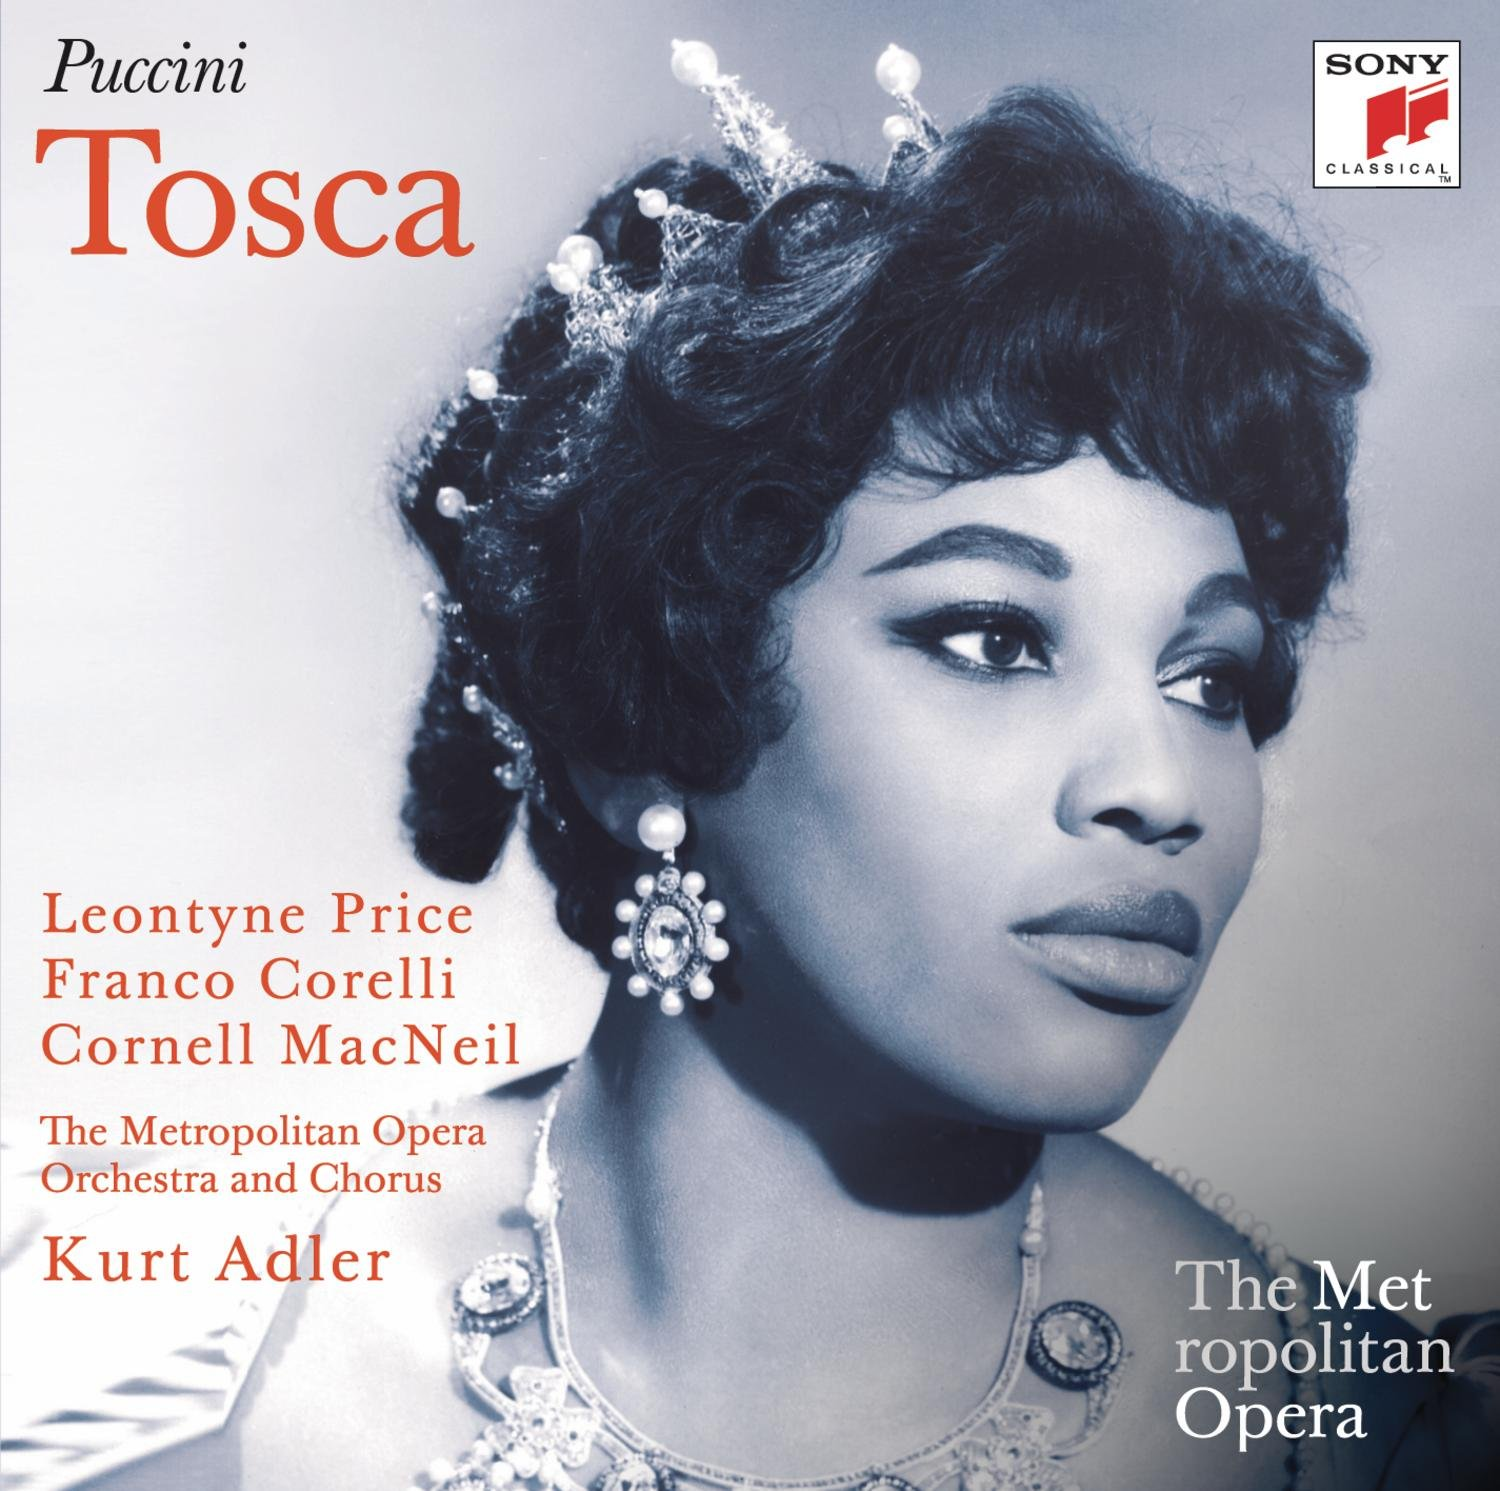 Puccini: Tosca by Sony Classics